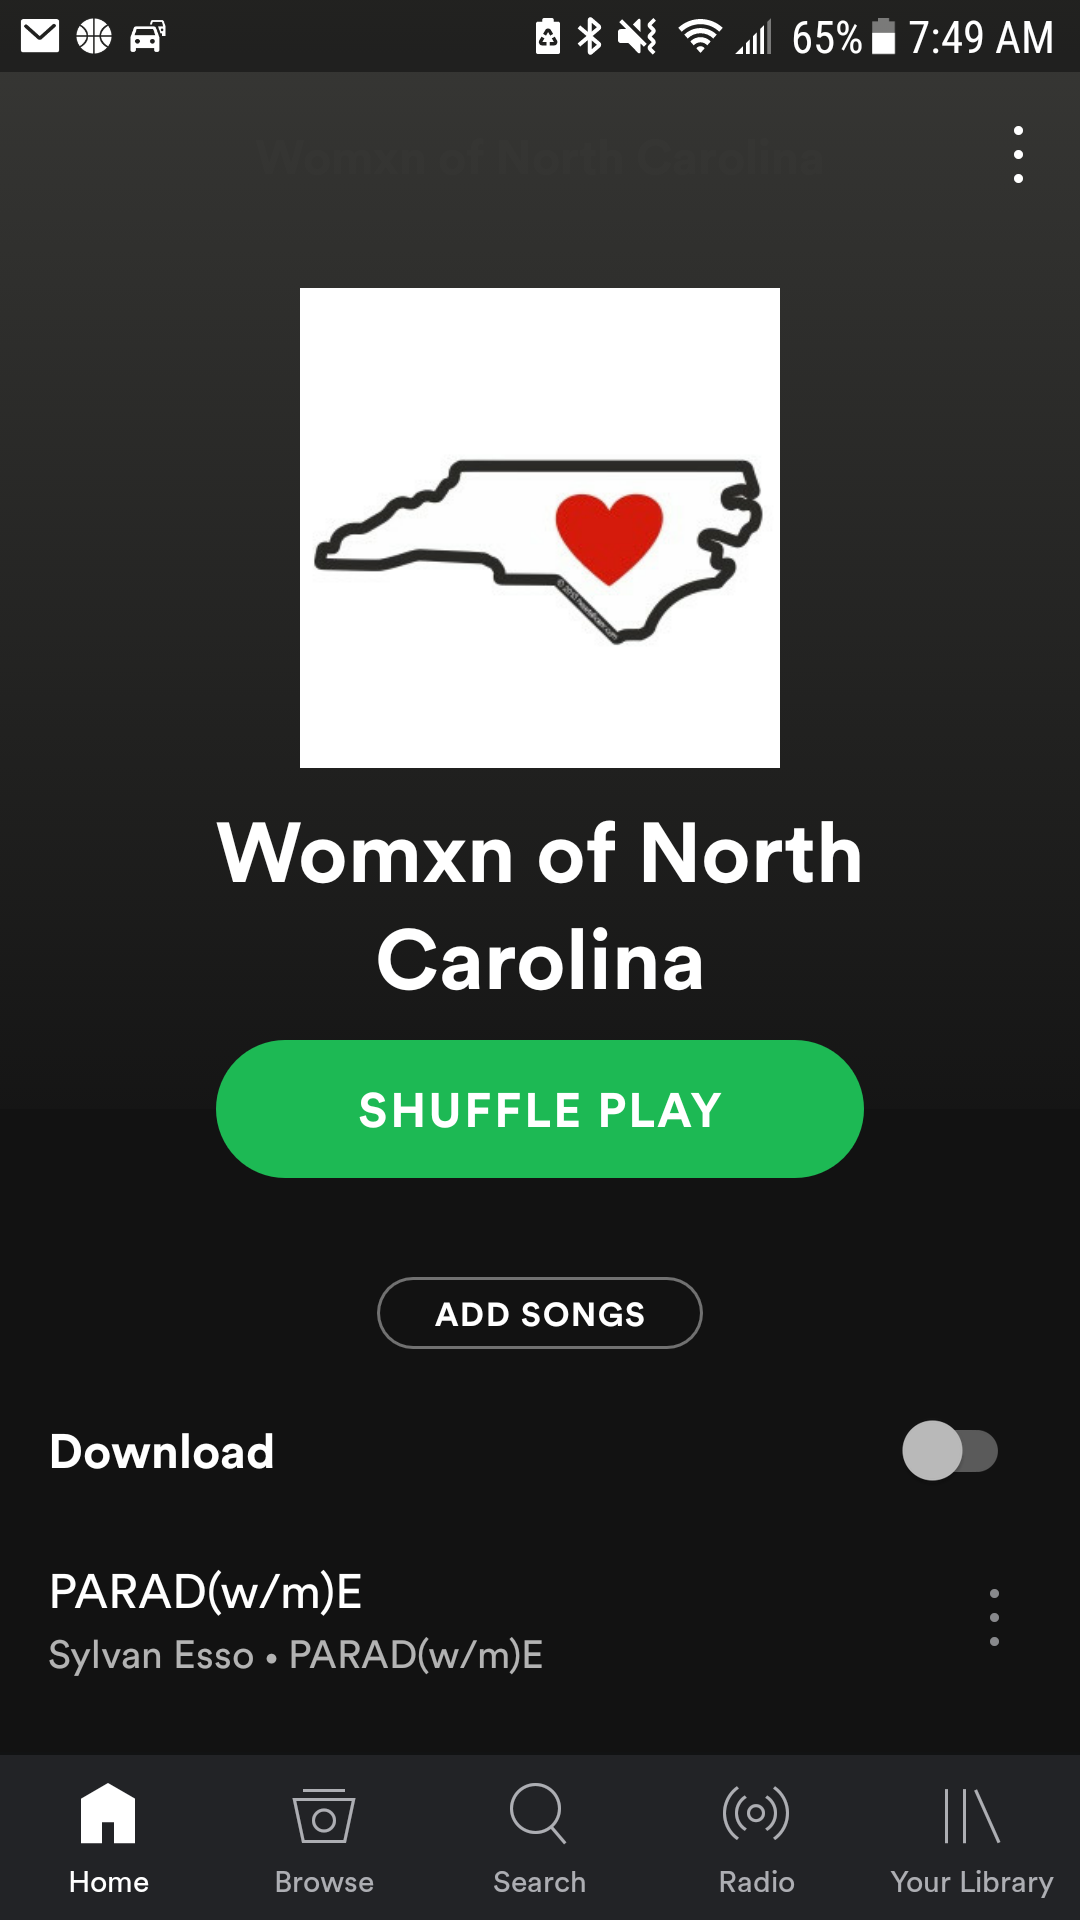 """Click to lINK TO """"WOMXN OF NORTH CAROLINA"""" SPOTIFY PLAYLIST"""